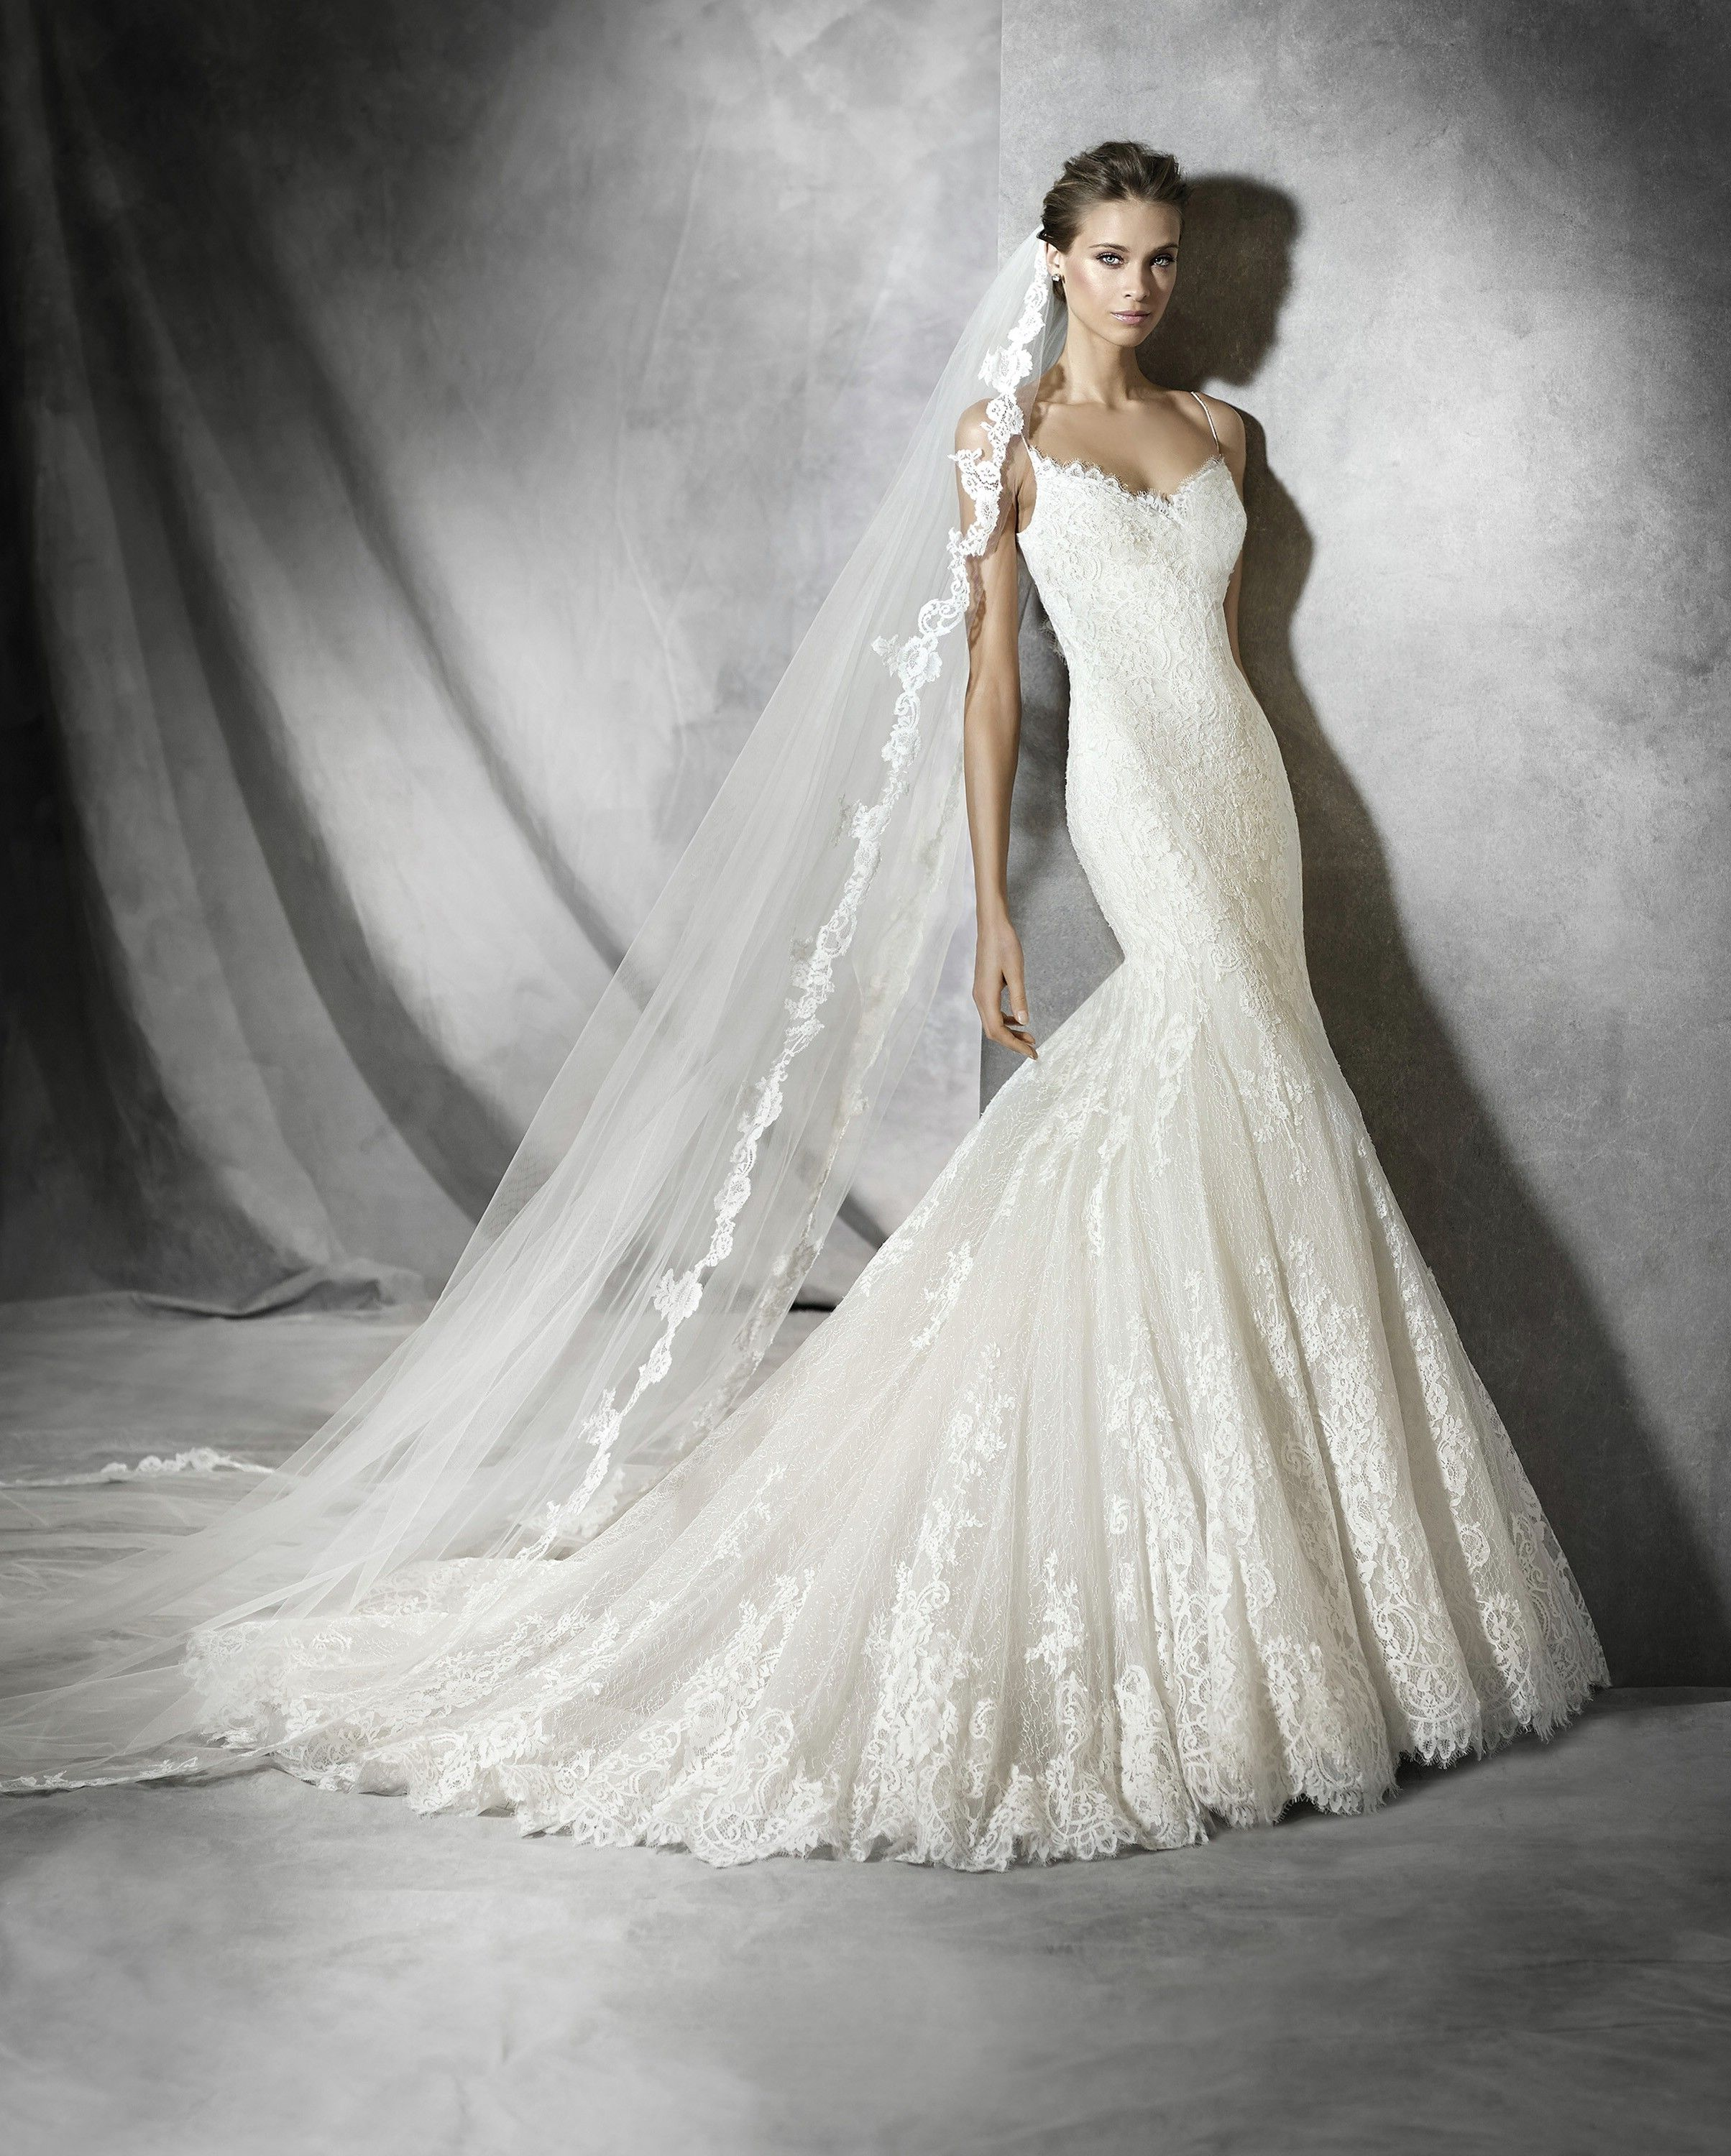 Praciala pronovias available at lulu39s bridal boutique for Wedding dress boutiques dallas